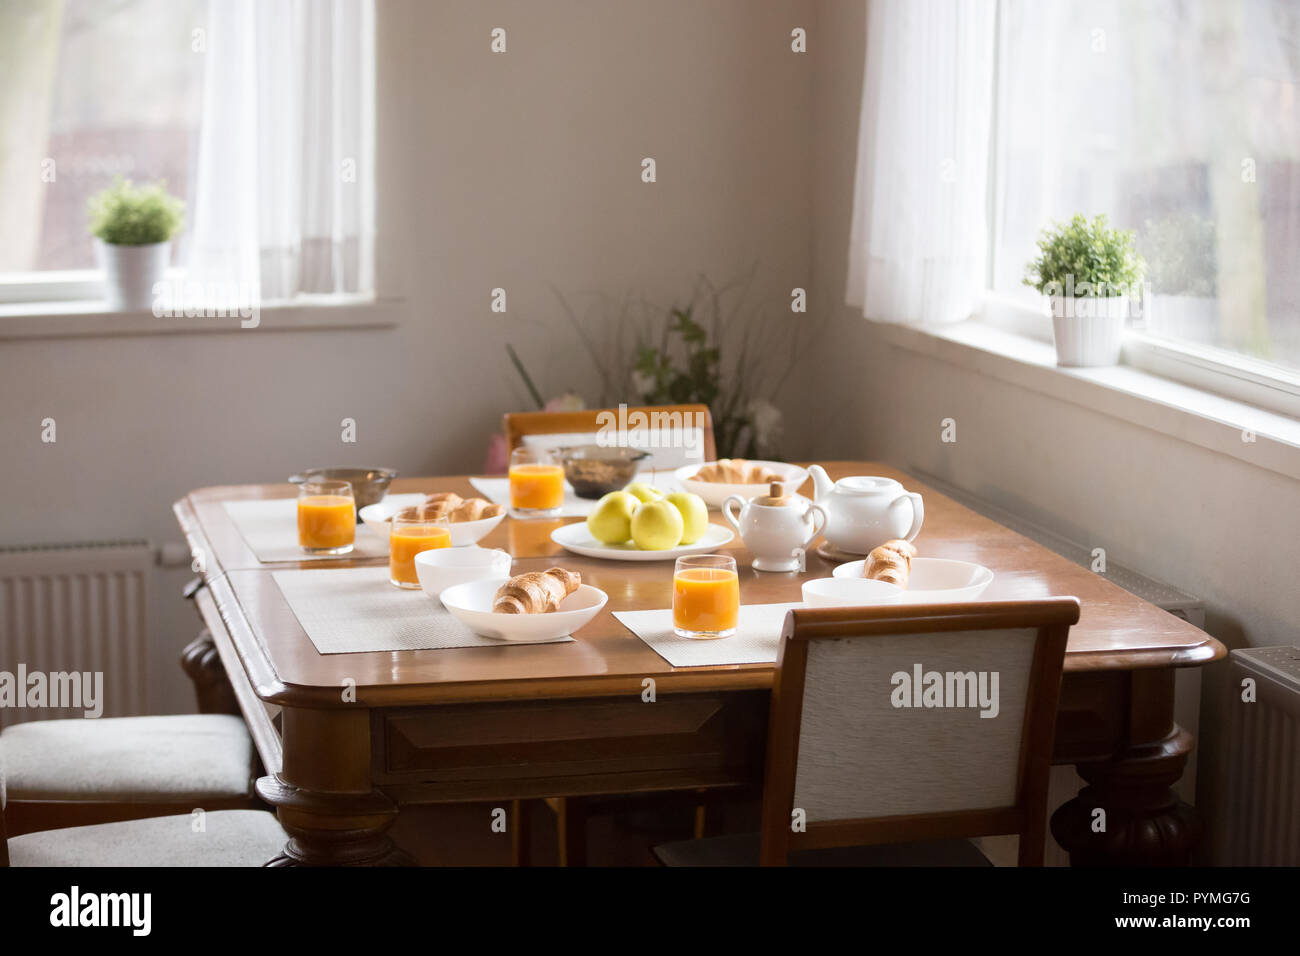 Breakfast is served at the dinner table - Stock Image